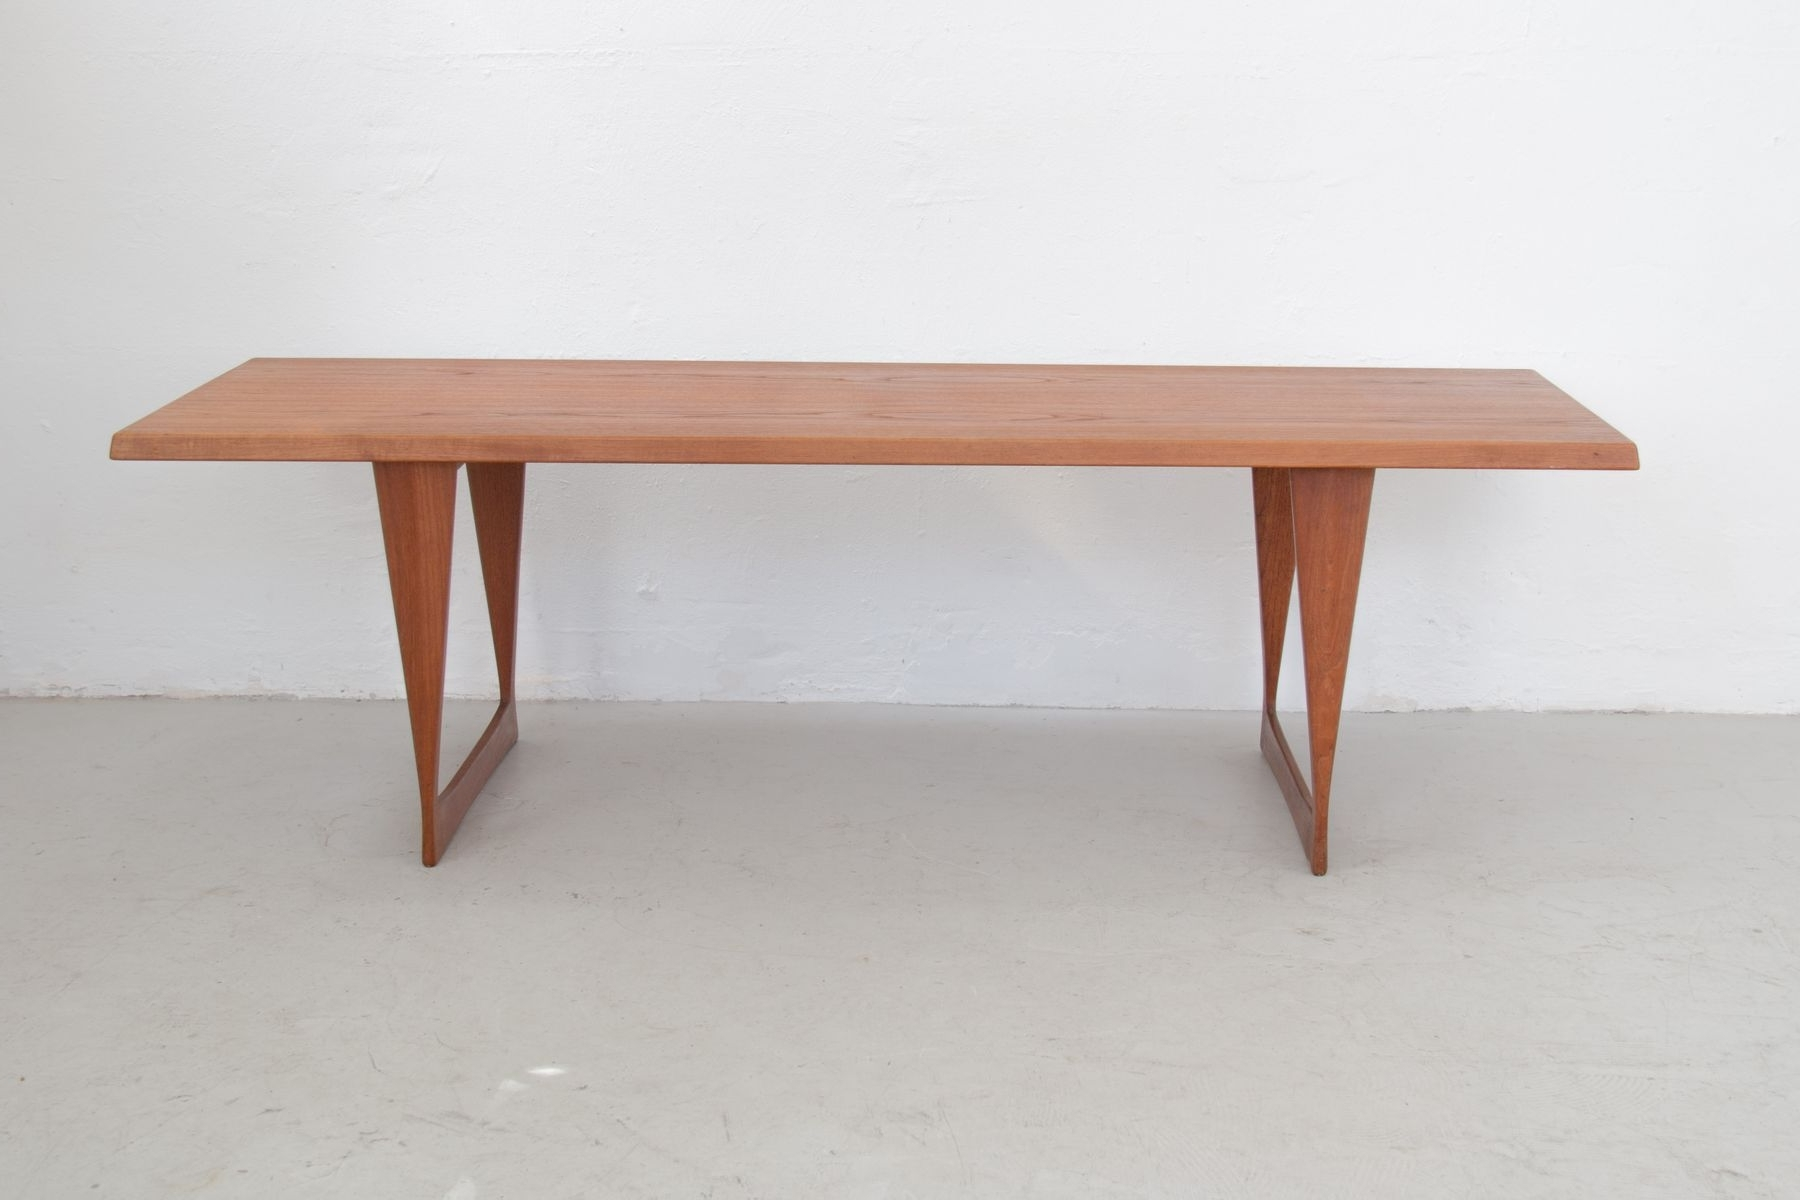 Large Vintage Teak Coffee Table With Skid Feet For Sale At Pamono Pertaining To Newest Large Teak Coffee Tables (View 10 of 20)